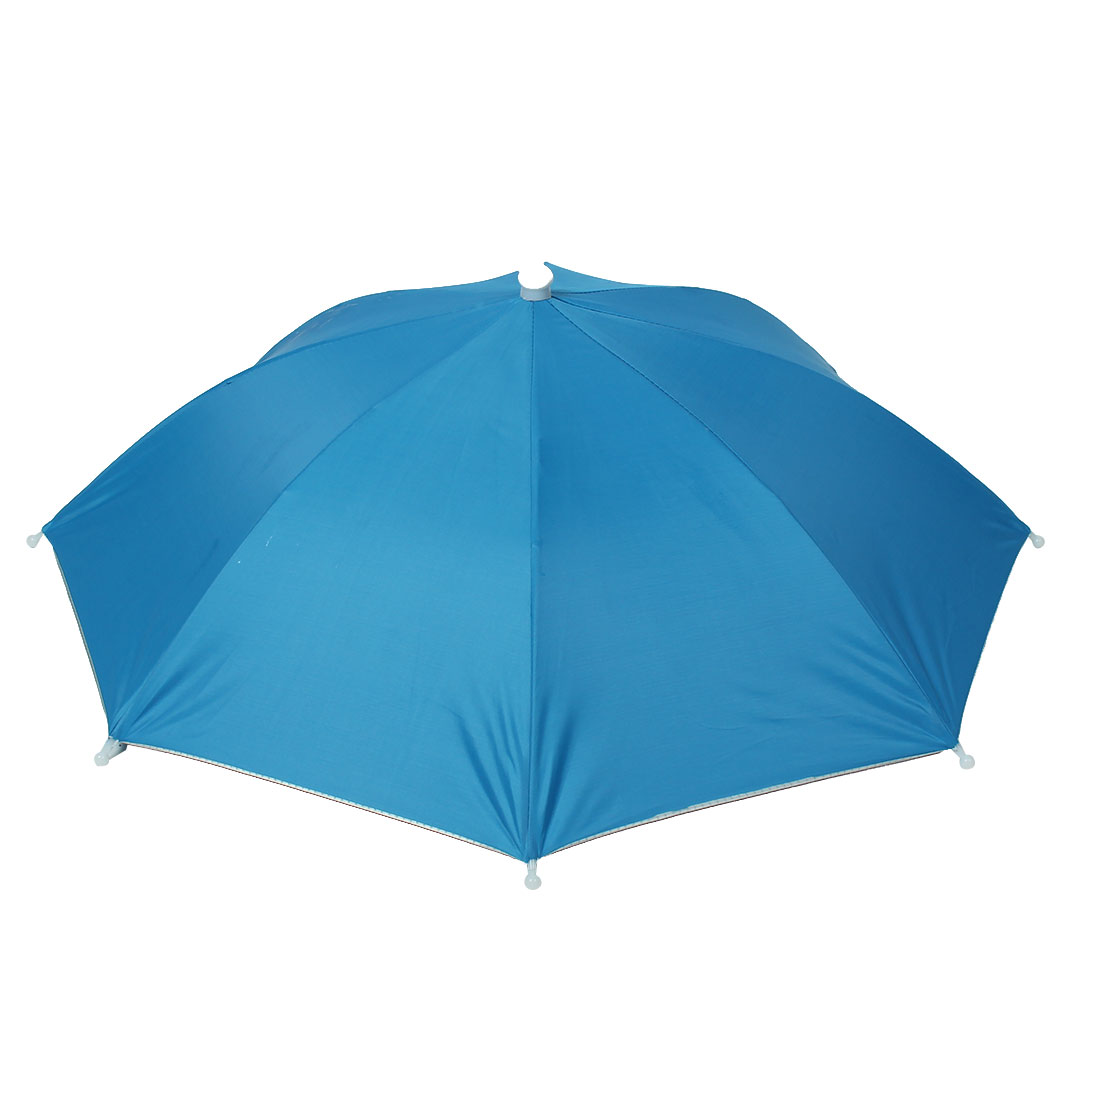 Light Blue Polyester Hands Free Fishing Beach Umbrella Hat